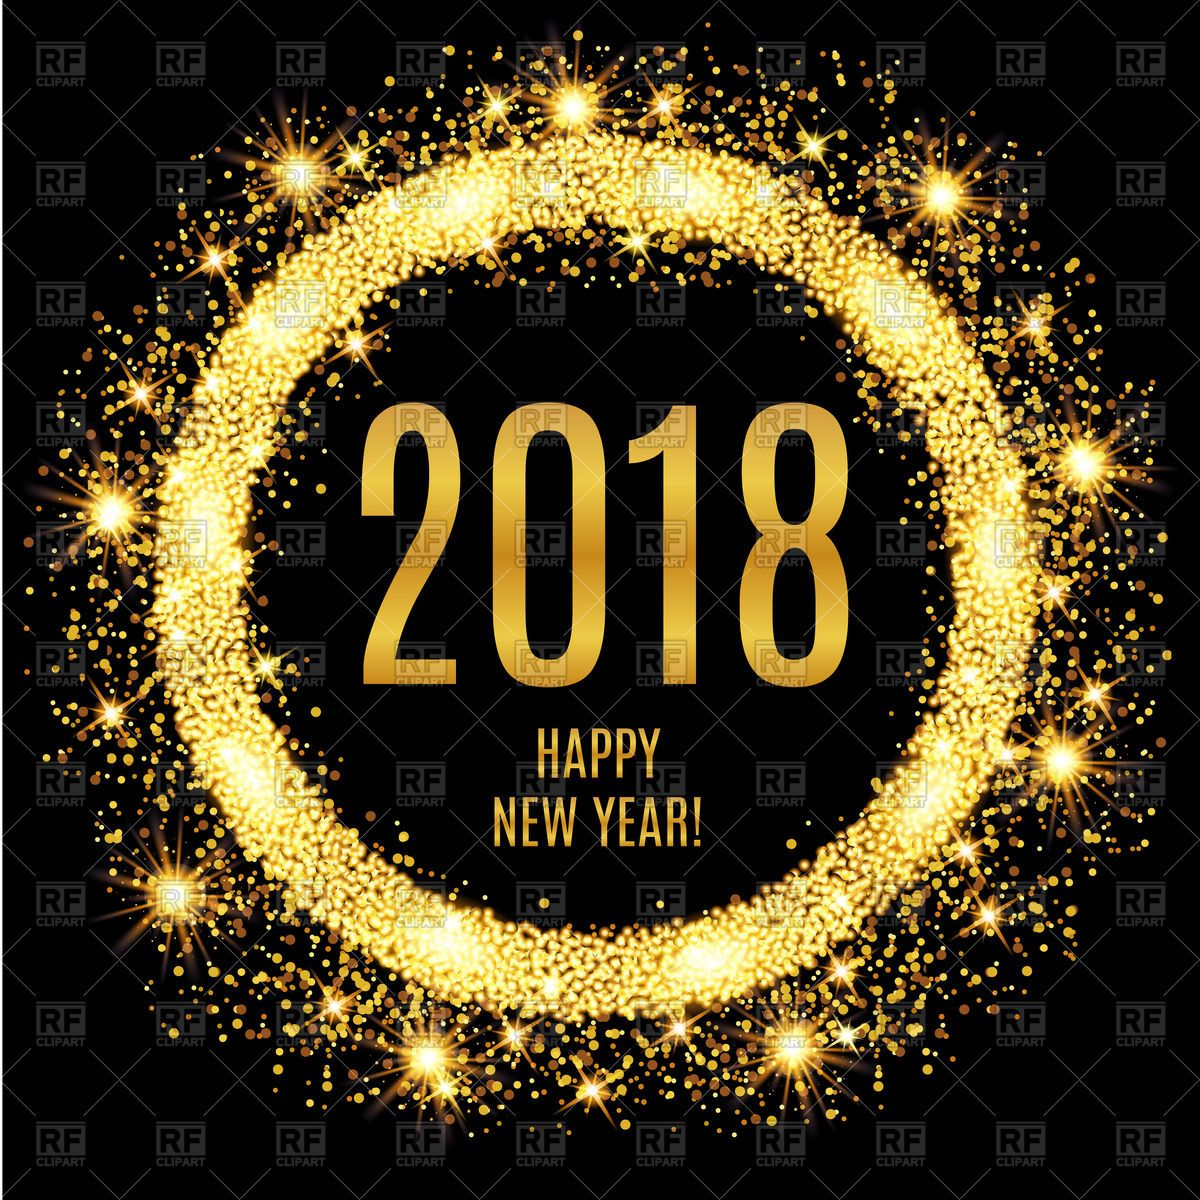 Vector image of 2018 Happy New Year glowing gold